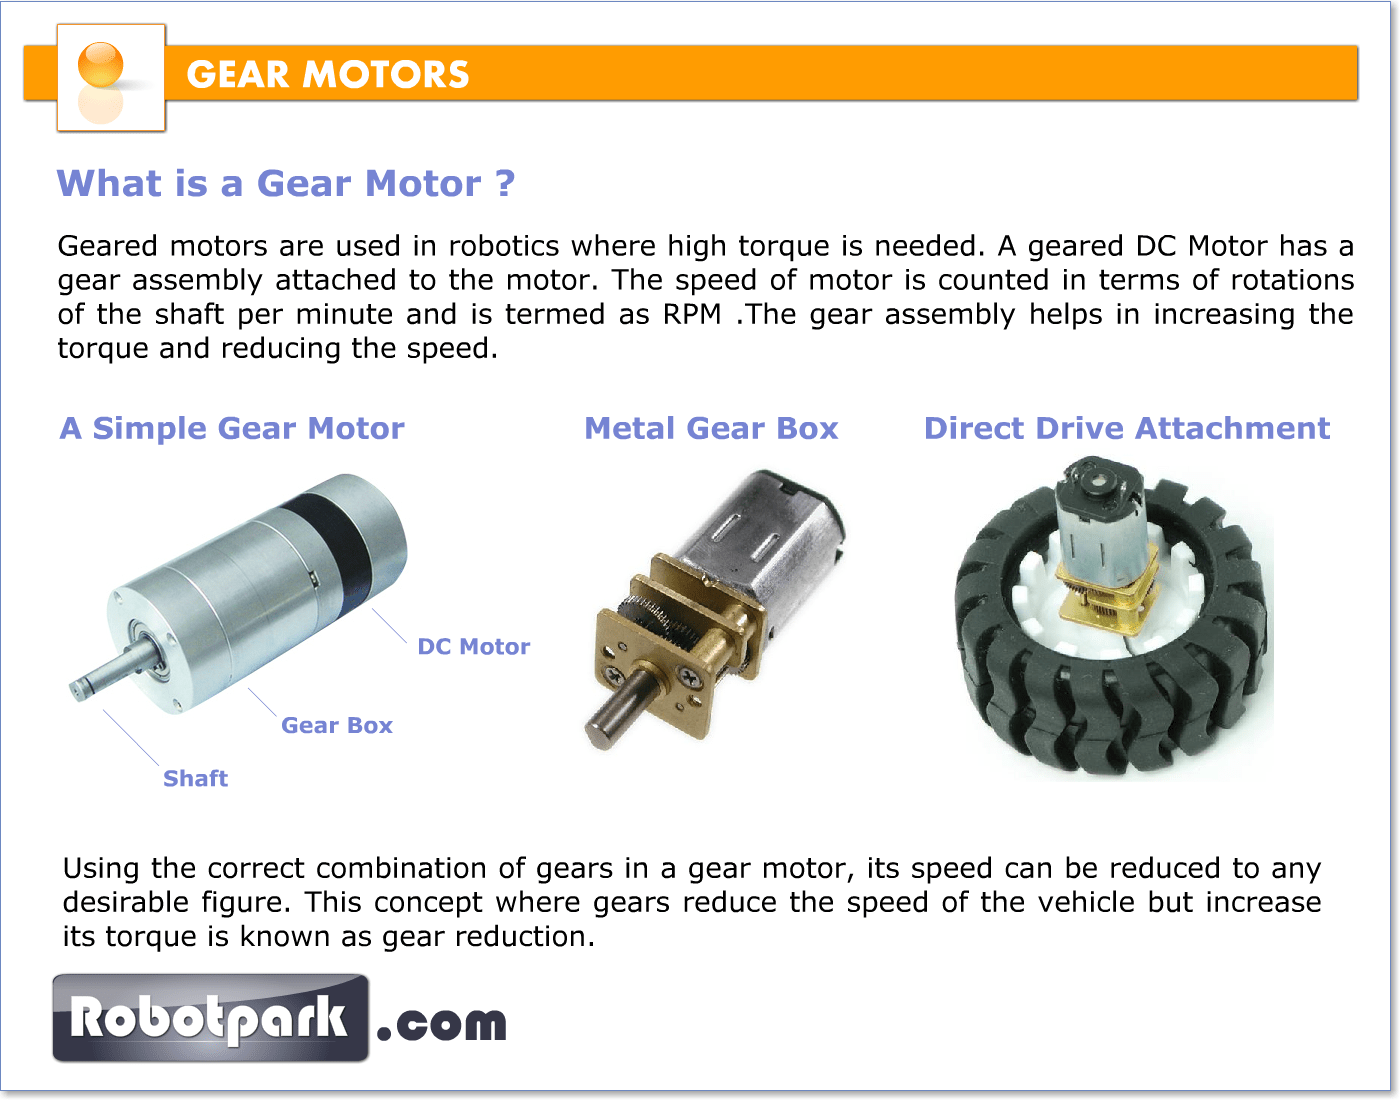 hight resolution of  dc gear motors are typically used in automotive applications such as power winches on trucks windshield wiper motors power seats or power windows